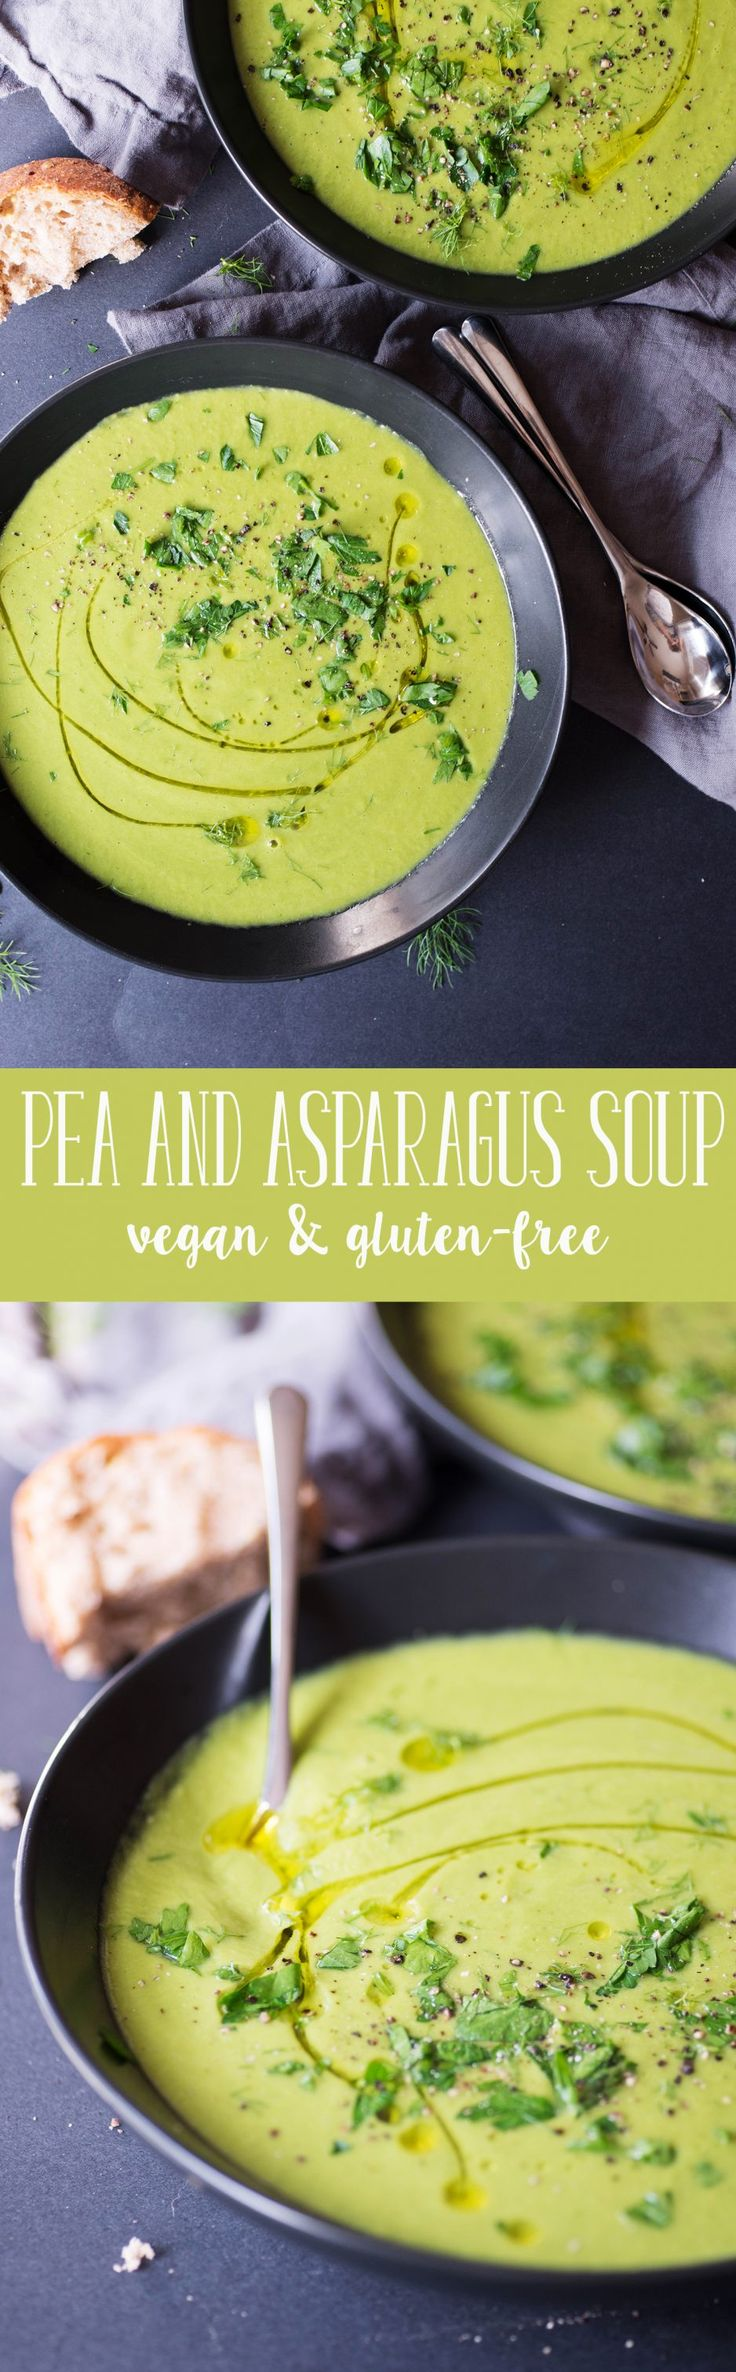 Pea and Asparagus Soup! This dairy-free, vegetable soup is perfect for Spring or Easter. Gluten-Free and Vegan. | www.delishknowledge.com